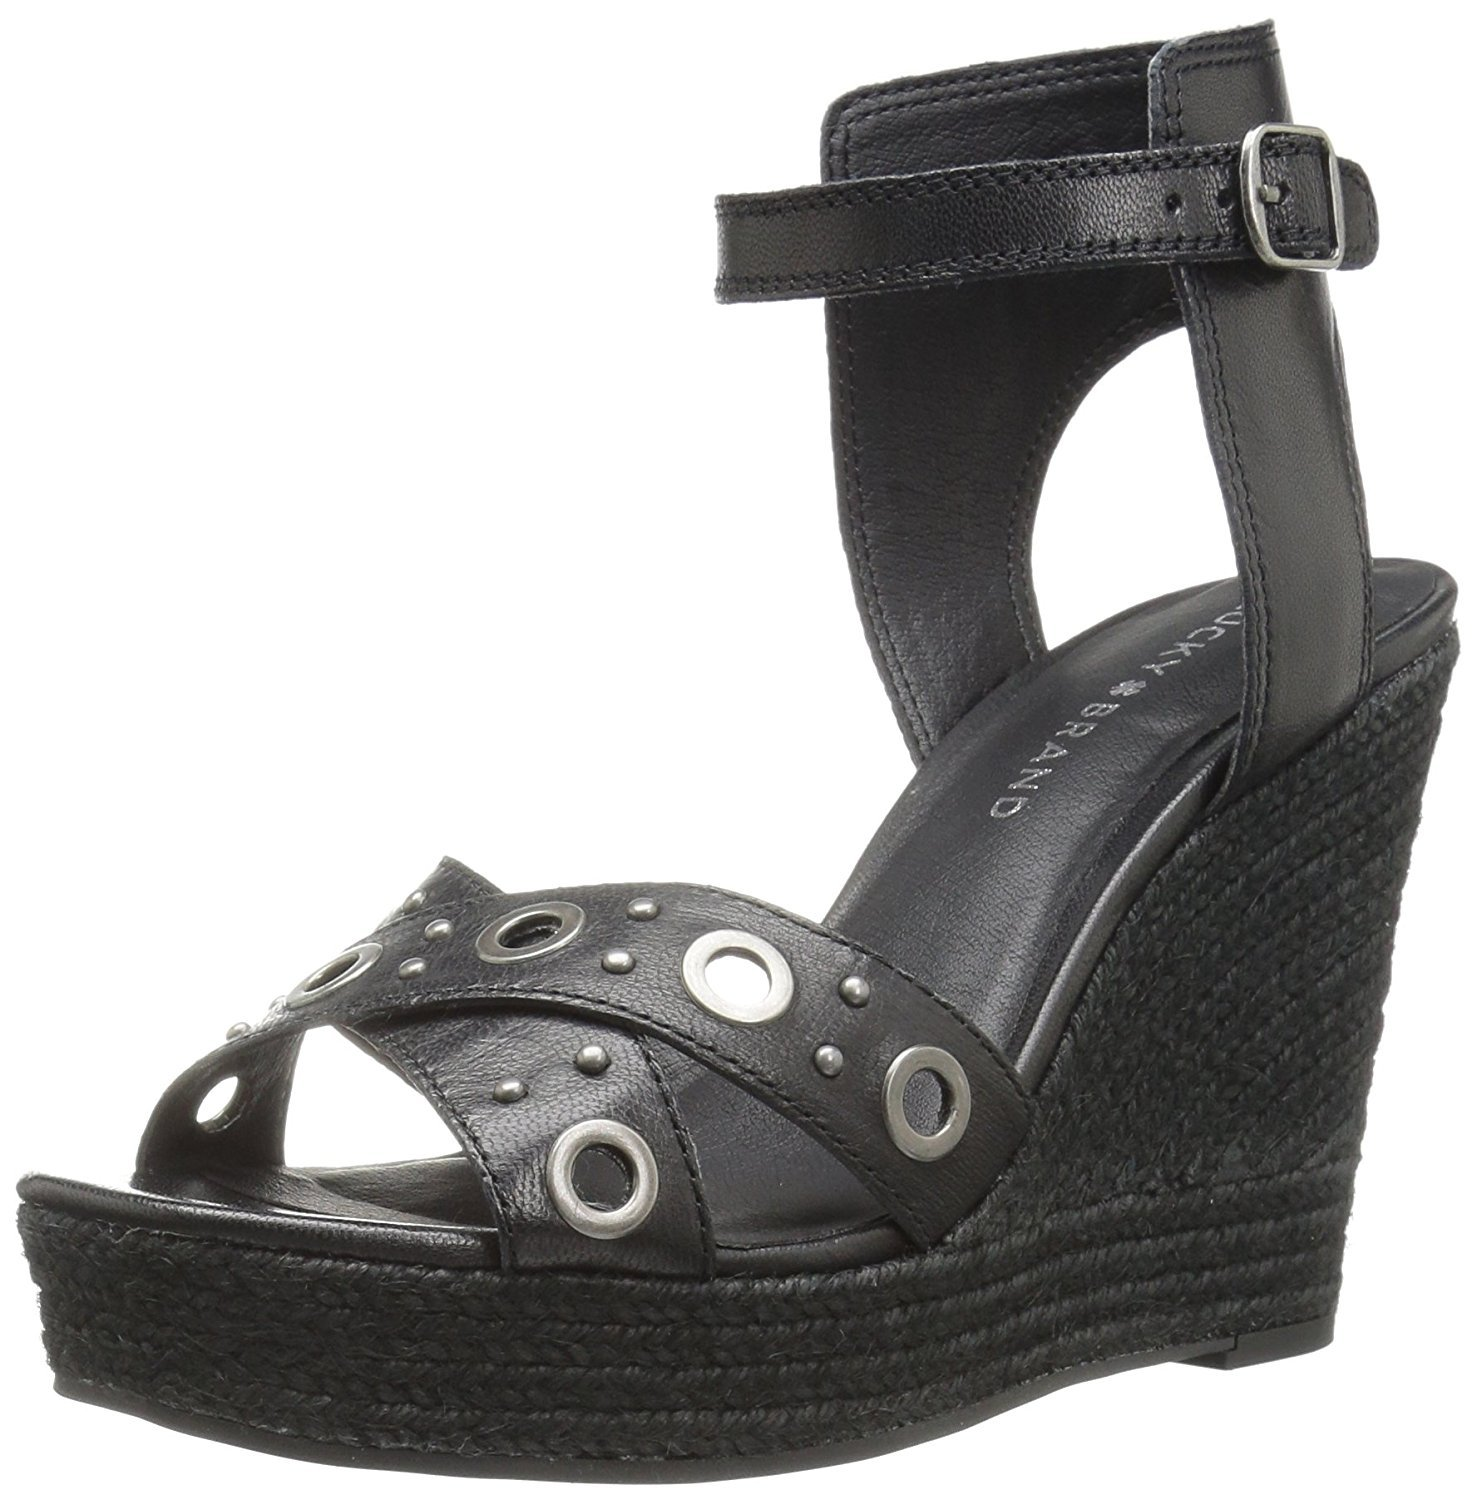 Lucky Brand Women's Leander Wedge Sandal, Black, 7.5 Medium US